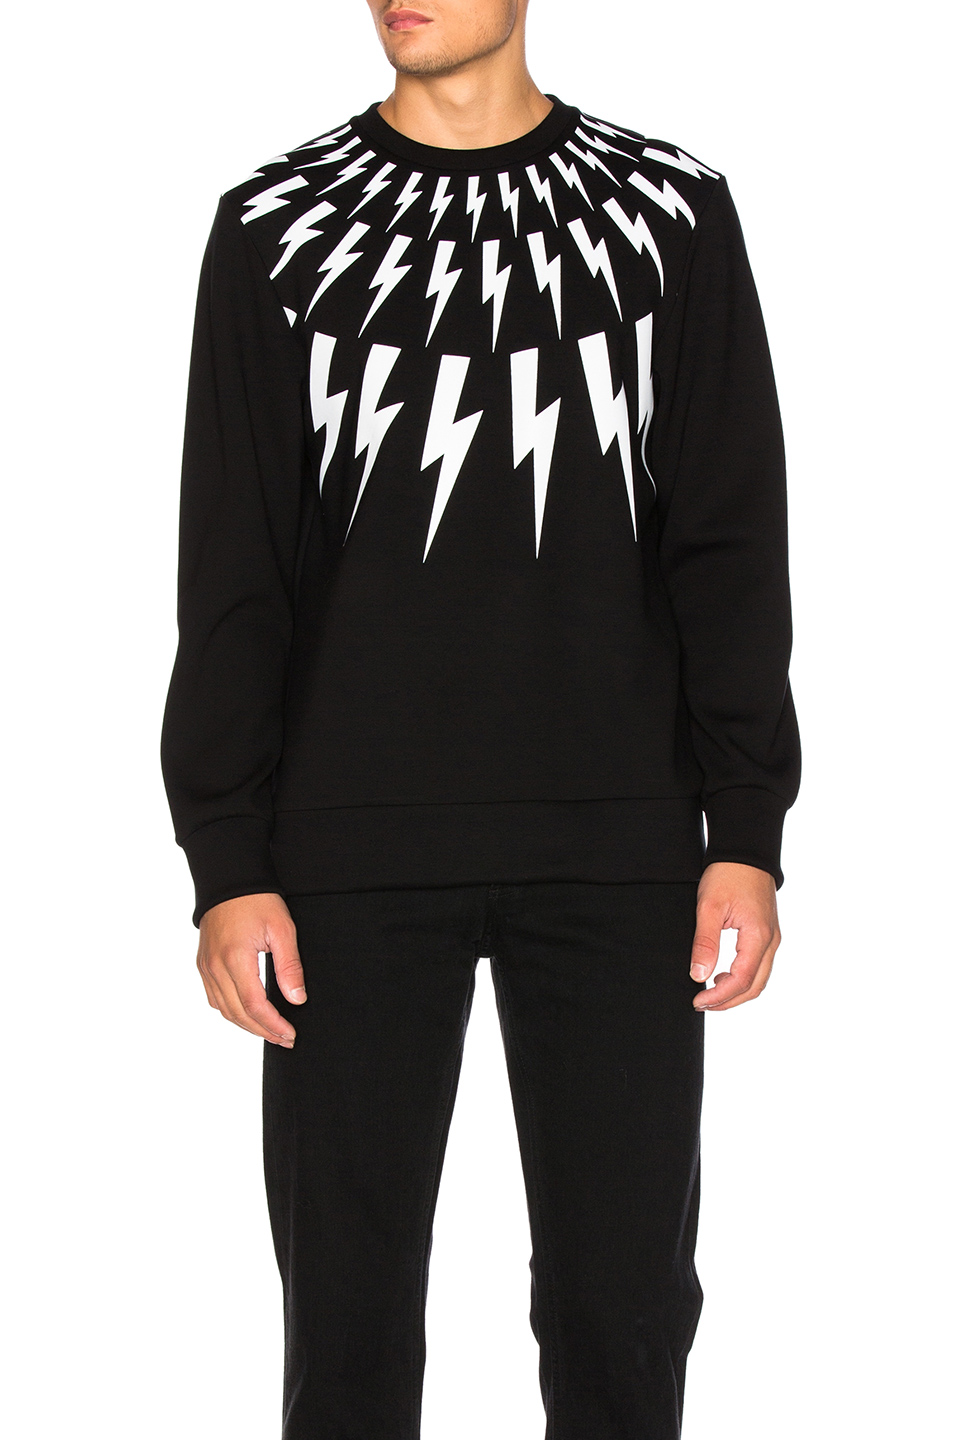 Neil Barrett Thunderbolt Fair Isle Sweatshirt in Black